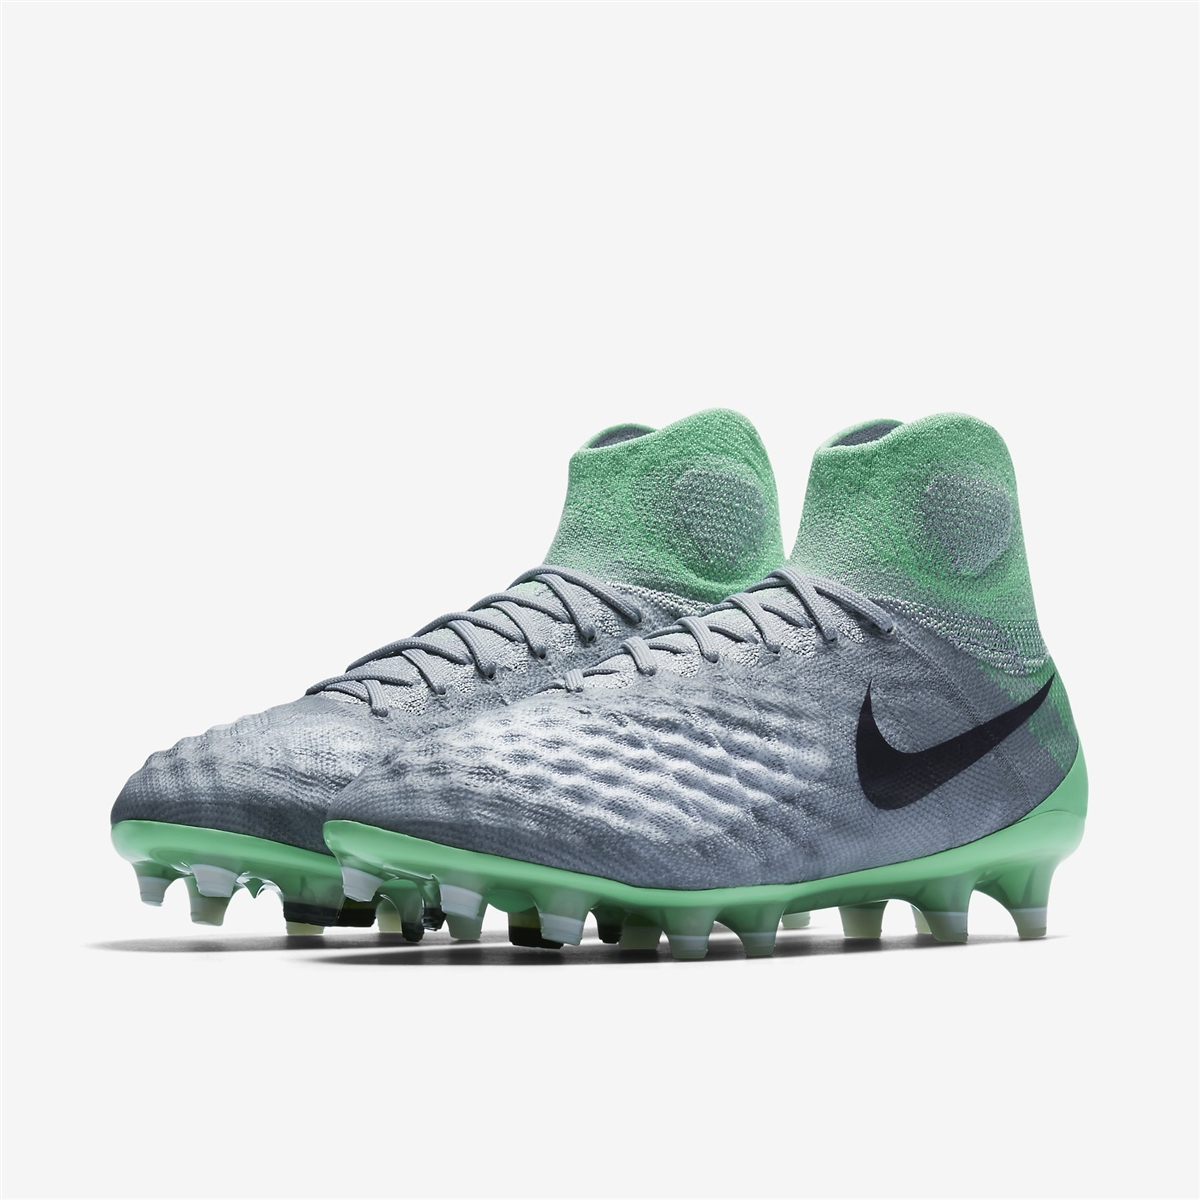 d24b7f629b1 Nike Women s Magista Obra II FG Soccer Cleats (Wolf Grey Purple ...